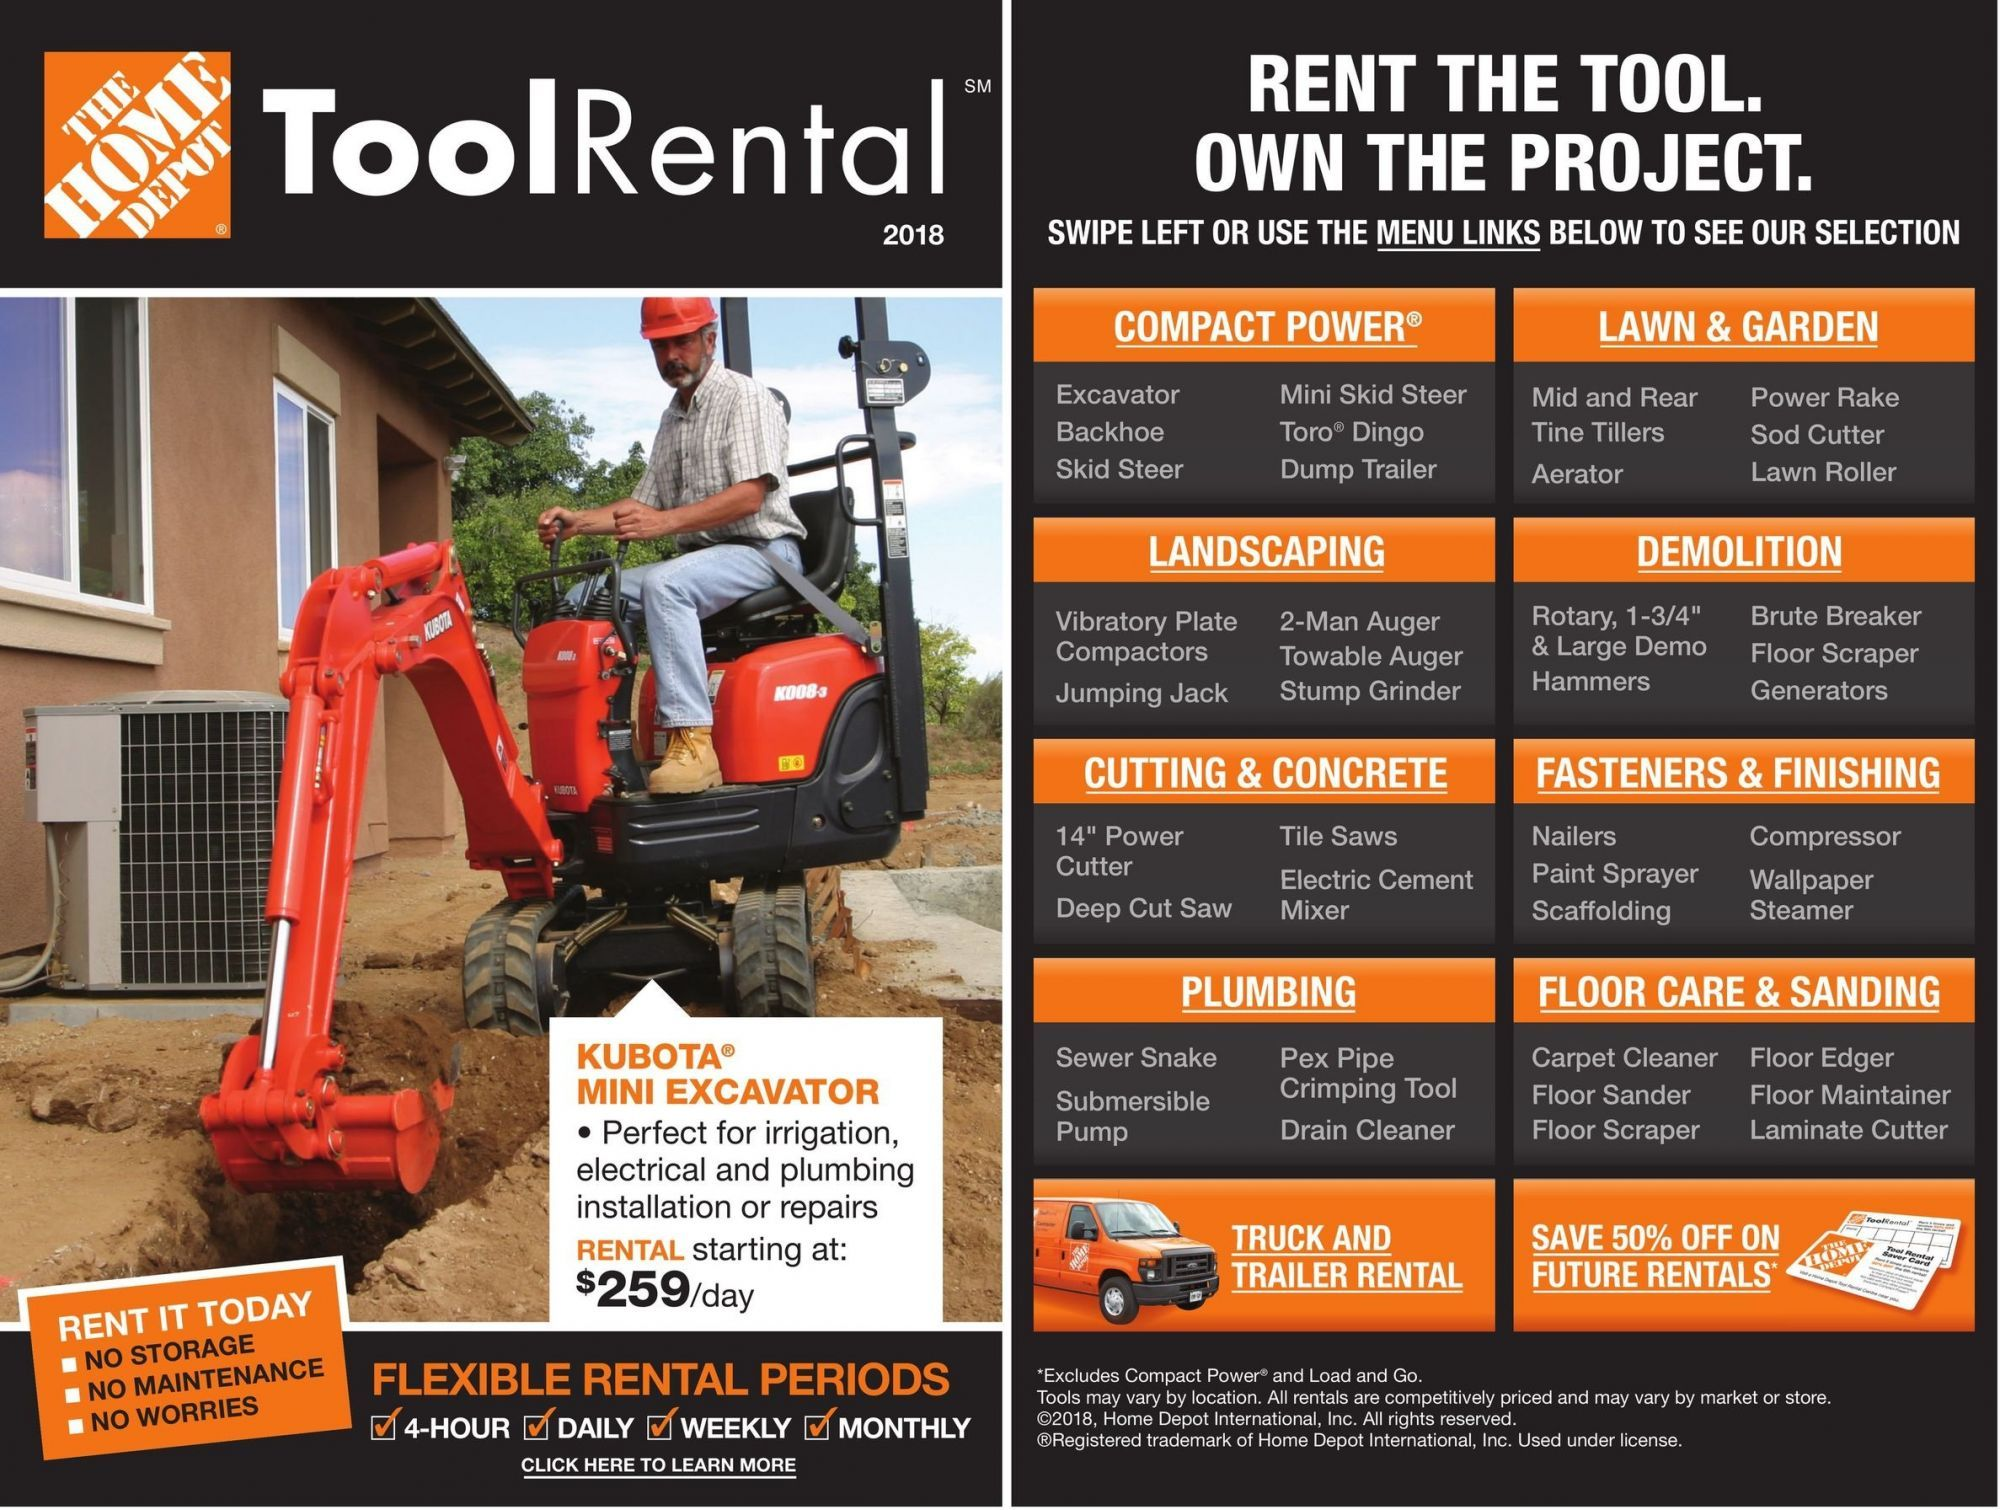 Flyer Home Depot Tool Rental 2018 Canada From Friday March 23 2018 To Monday December 31 2018 Home Depot Wood Chipper Cool Deck